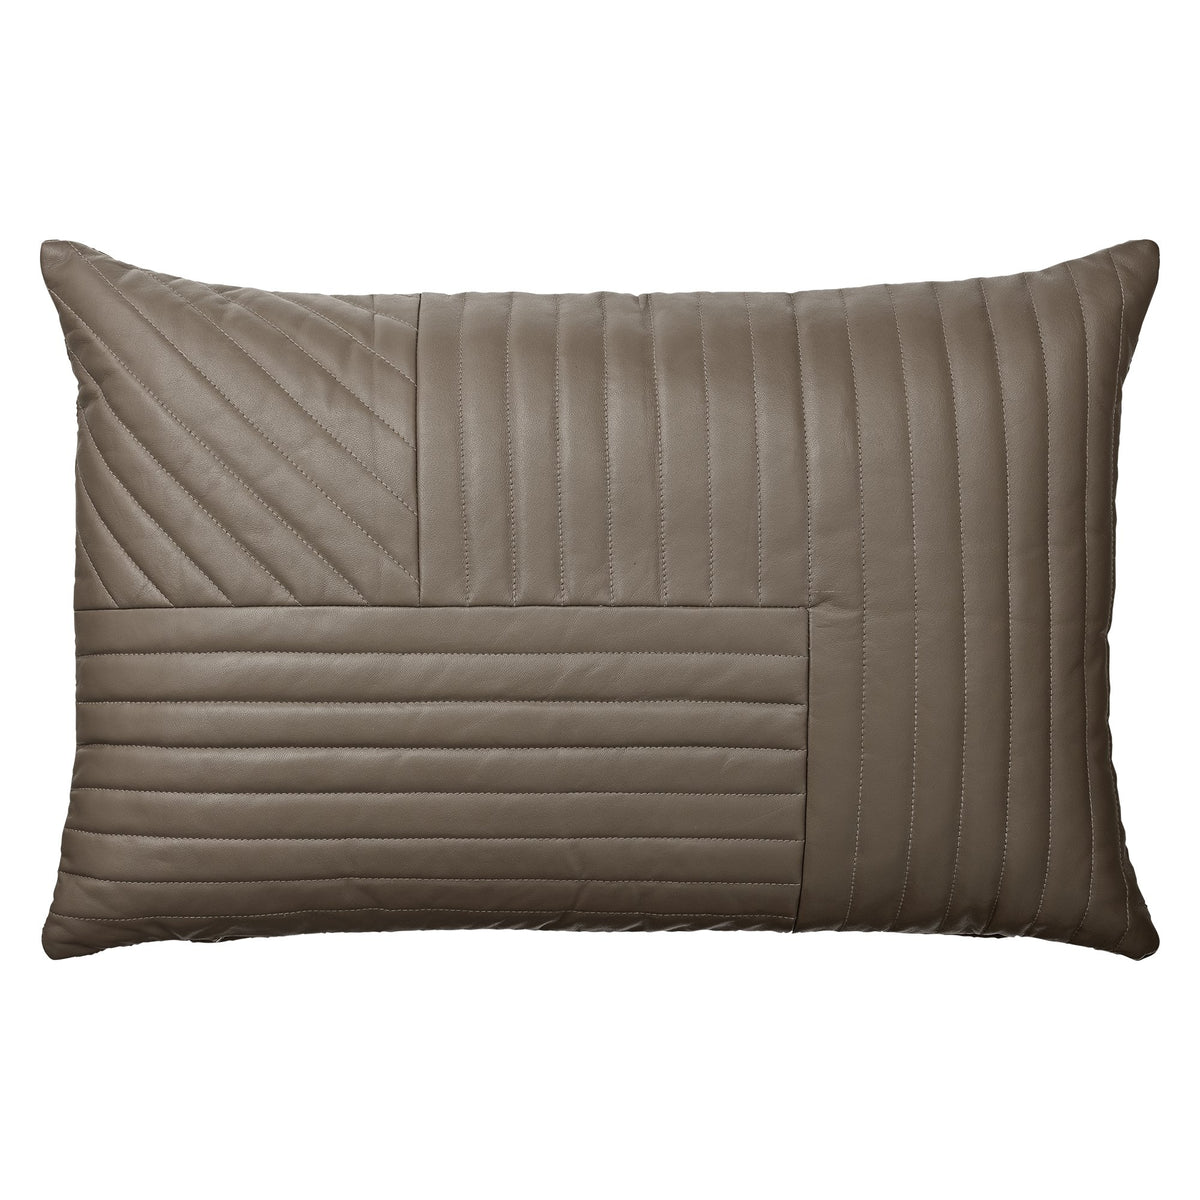 MOTUM cushion